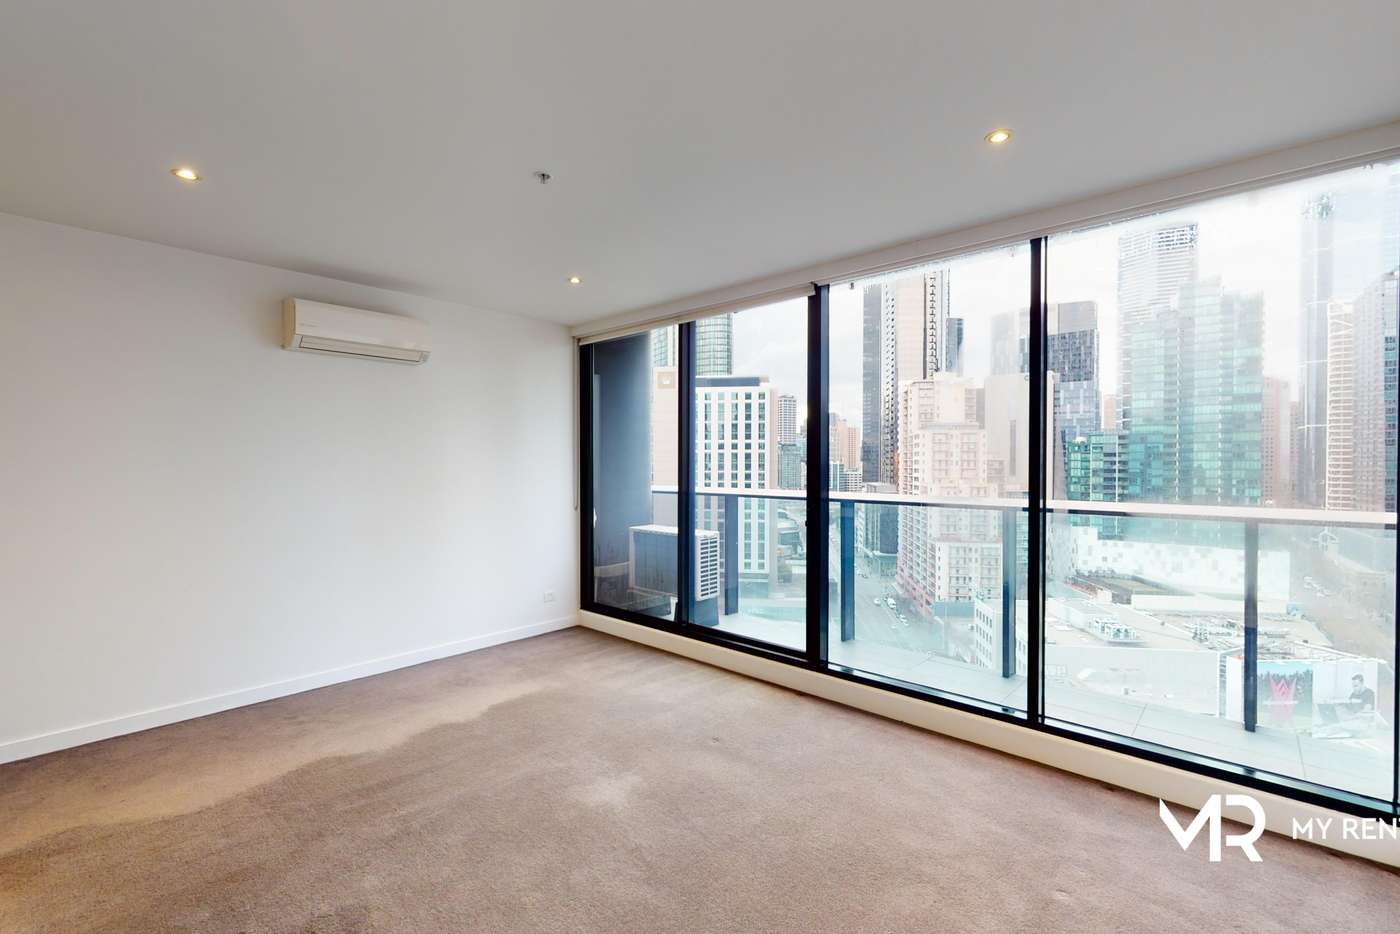 Main view of Homely apartment listing, 1702/250 City Road, Southbank VIC 3006